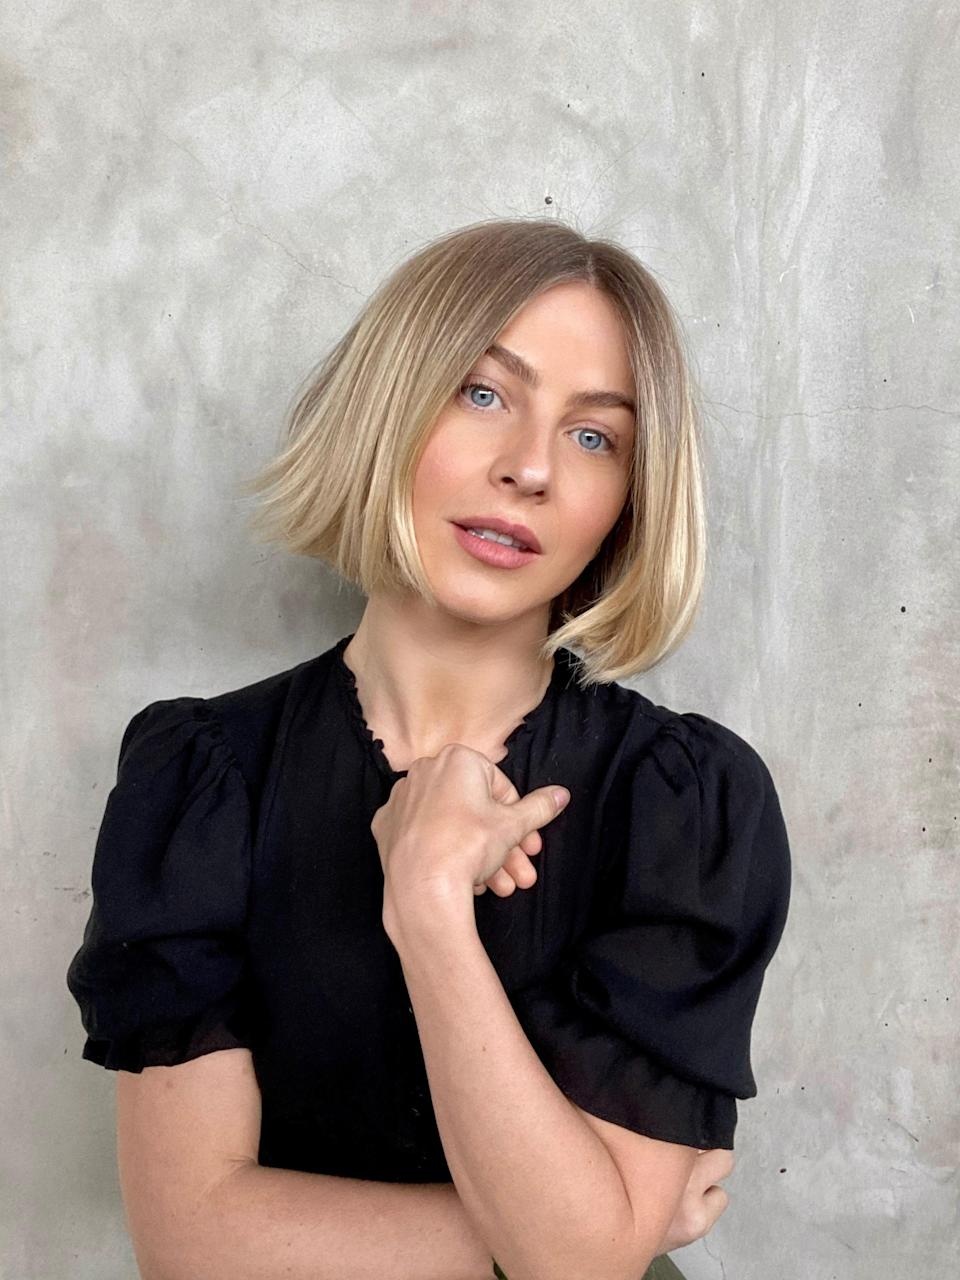 """""""I think the best haircuts for women in 2020 will be all about structure—out with the messy texture, in comes the polished structure,"""" says Riawna Capri, co-owner of <a href=""""https://www.ninezeroonesalon.com/"""" rel=""""nofollow noopener"""" target=""""_blank"""" data-ylk=""""slk:Nine Zero One"""" class=""""link rapid-noclick-resp"""">Nine Zero One</a>. In L.A., she says that fuzzy, bedhead hair is being traded in for more sleek styles of all lengths and you can expect to see """"more blunt thick lines in haircuts instead of shattered, piecey, texture."""""""